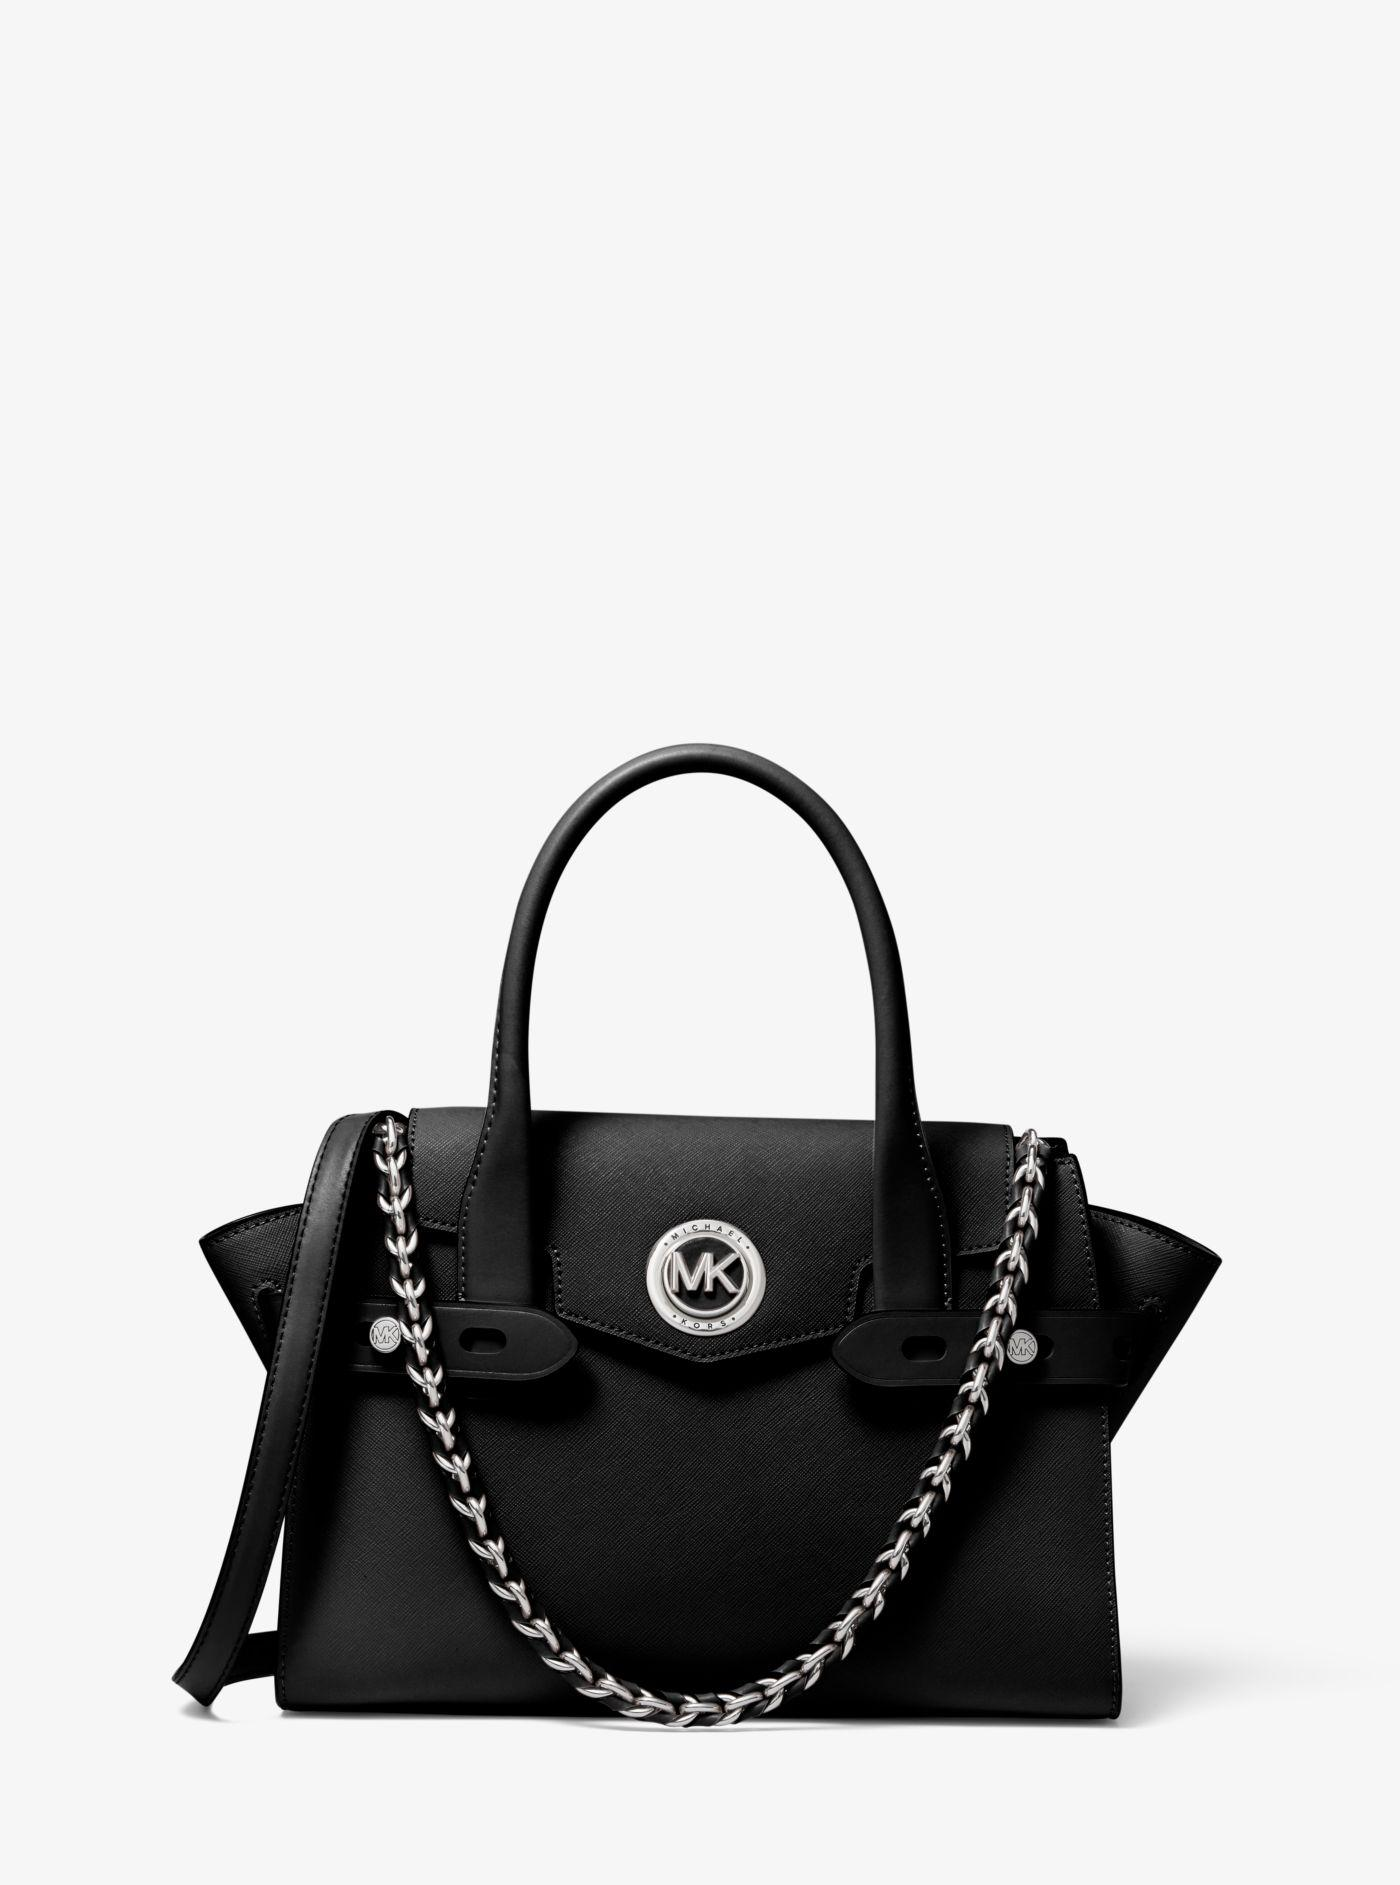 Carmen Small Saffiano Leather Belted Satchel